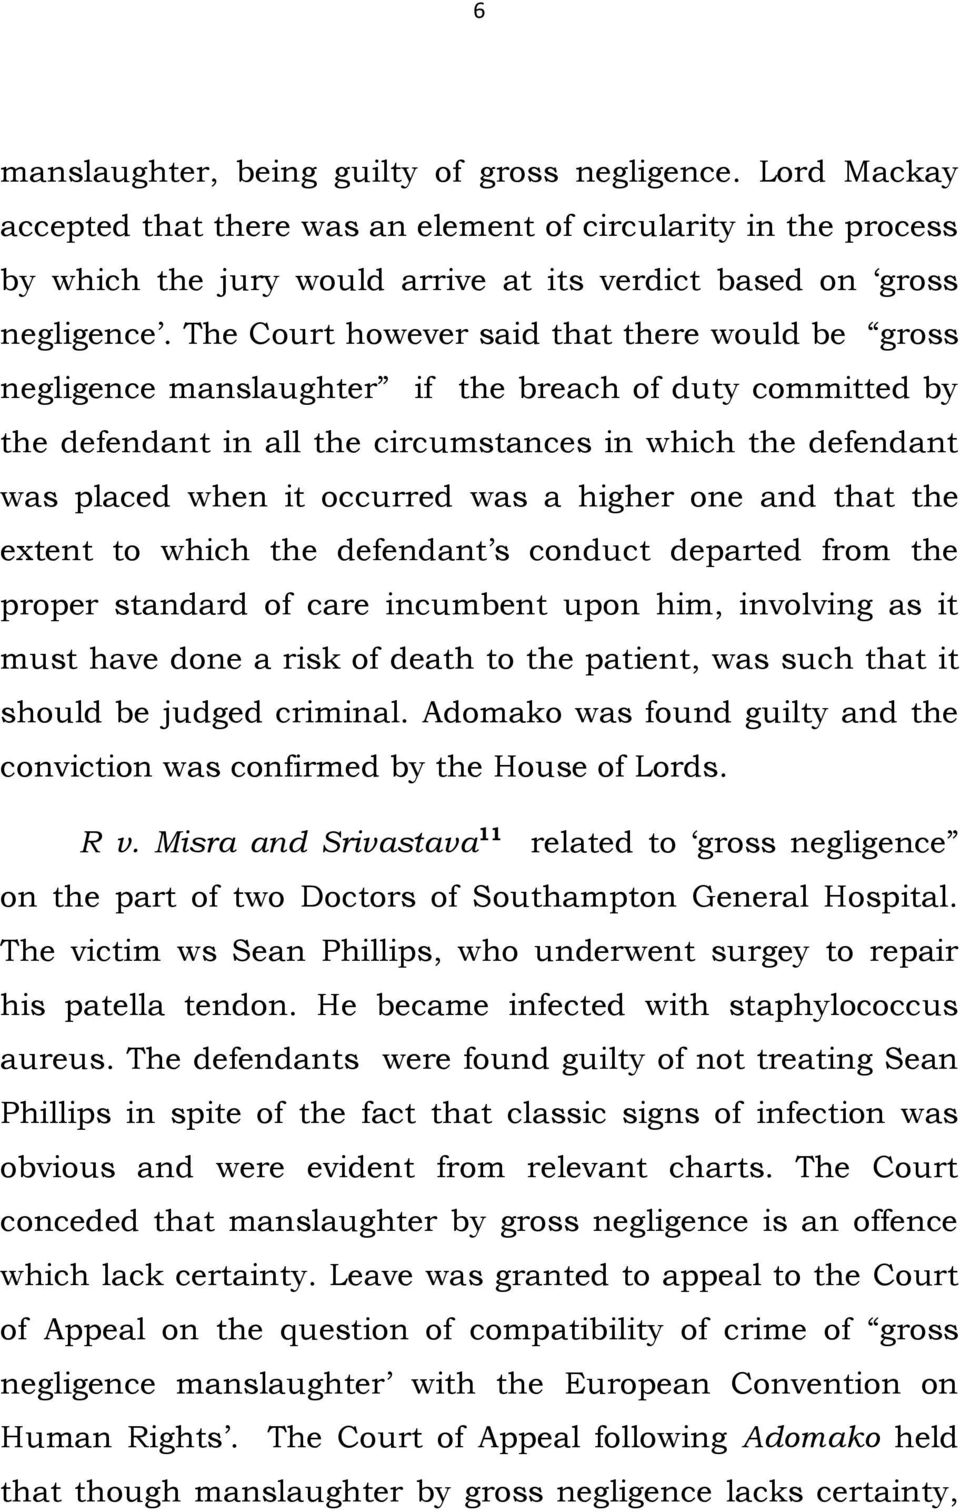 was a higher one and that the extent to which the defendant s conduct departed from the proper standard of care incumbent upon him, involving as it must have done a risk of death to the patient, was